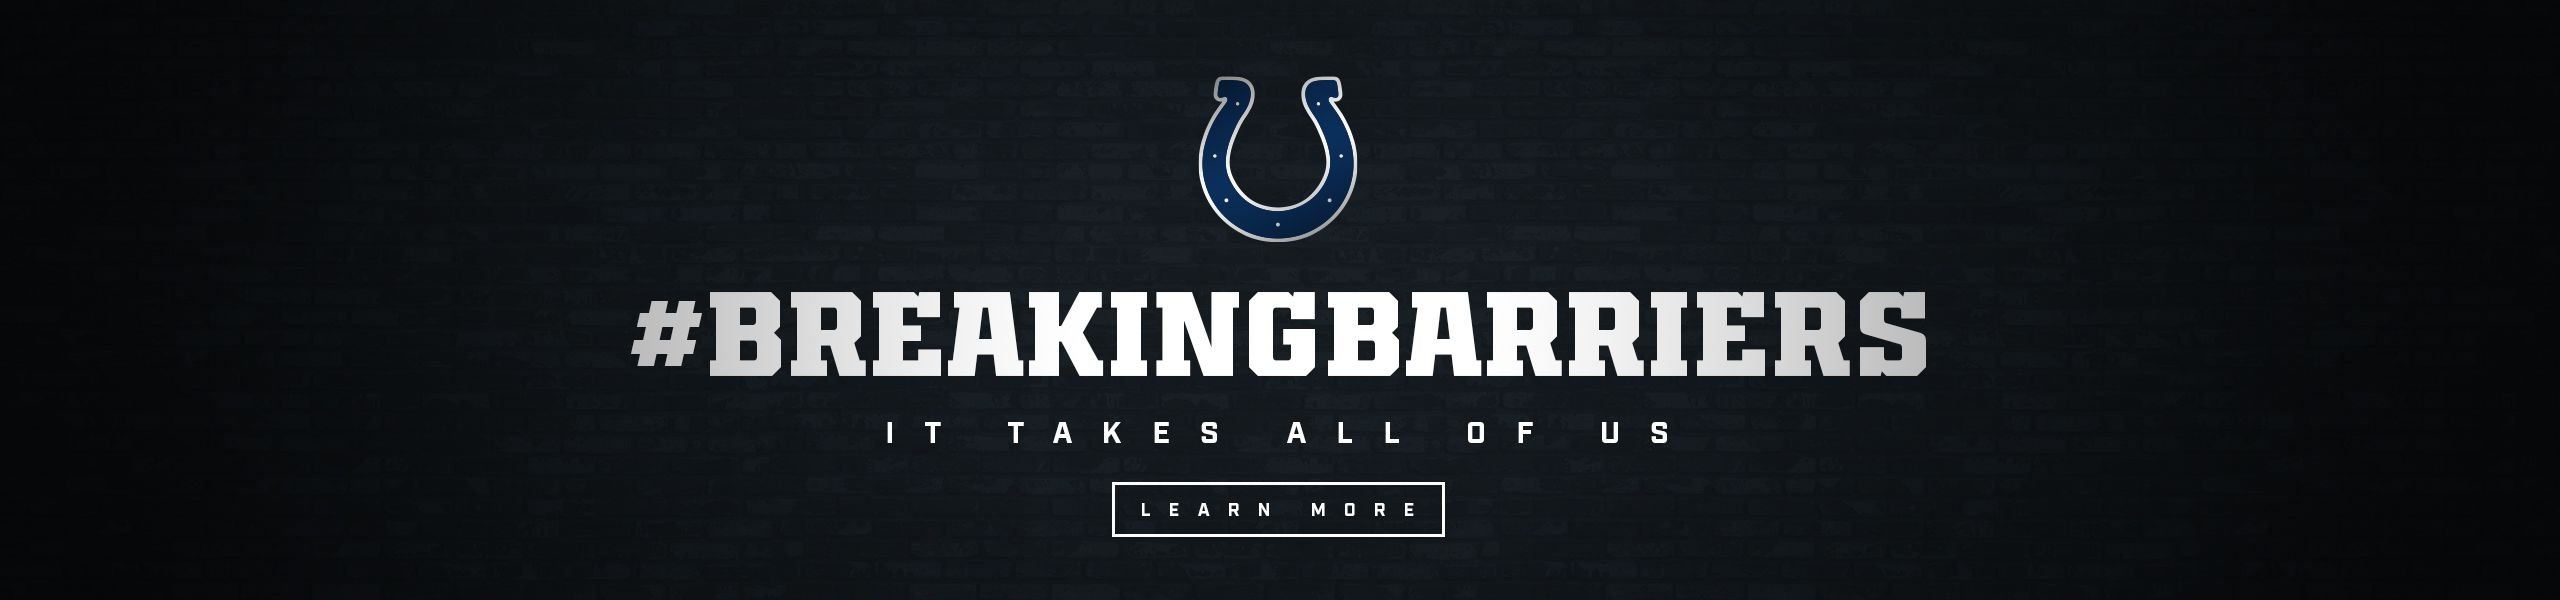 Indianapolis Colts Breaking Barriers  It Takes All Of Us  Learn More